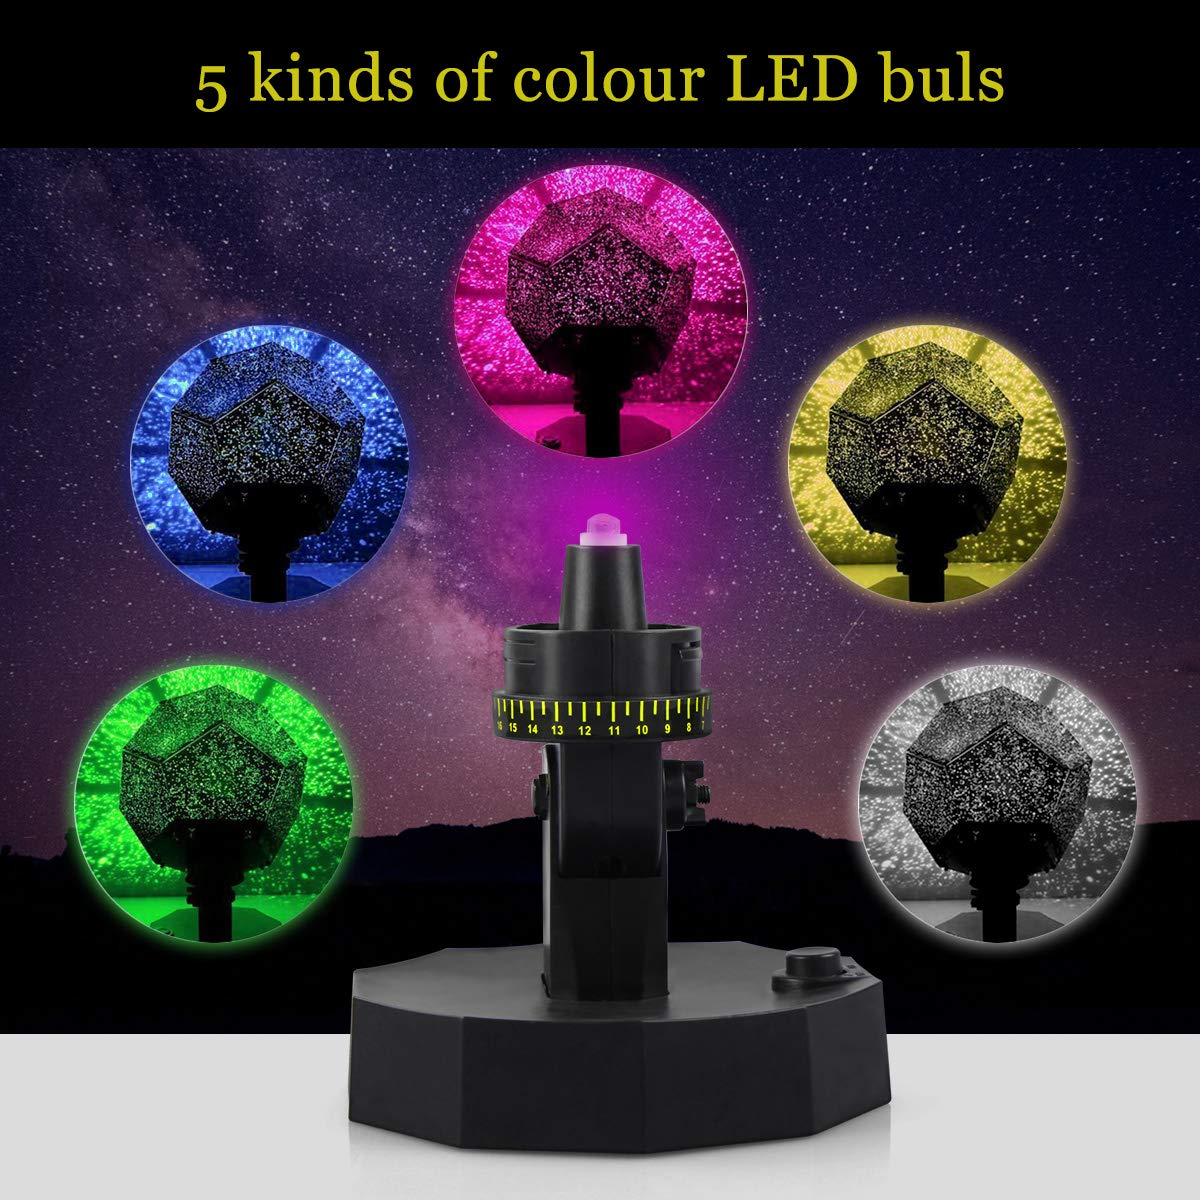 Sunnec Star Projector Rotation DIY Star Projection Night Light with 5 Light Colors for Wedding,Birthday,Parties,Kids Bedroom